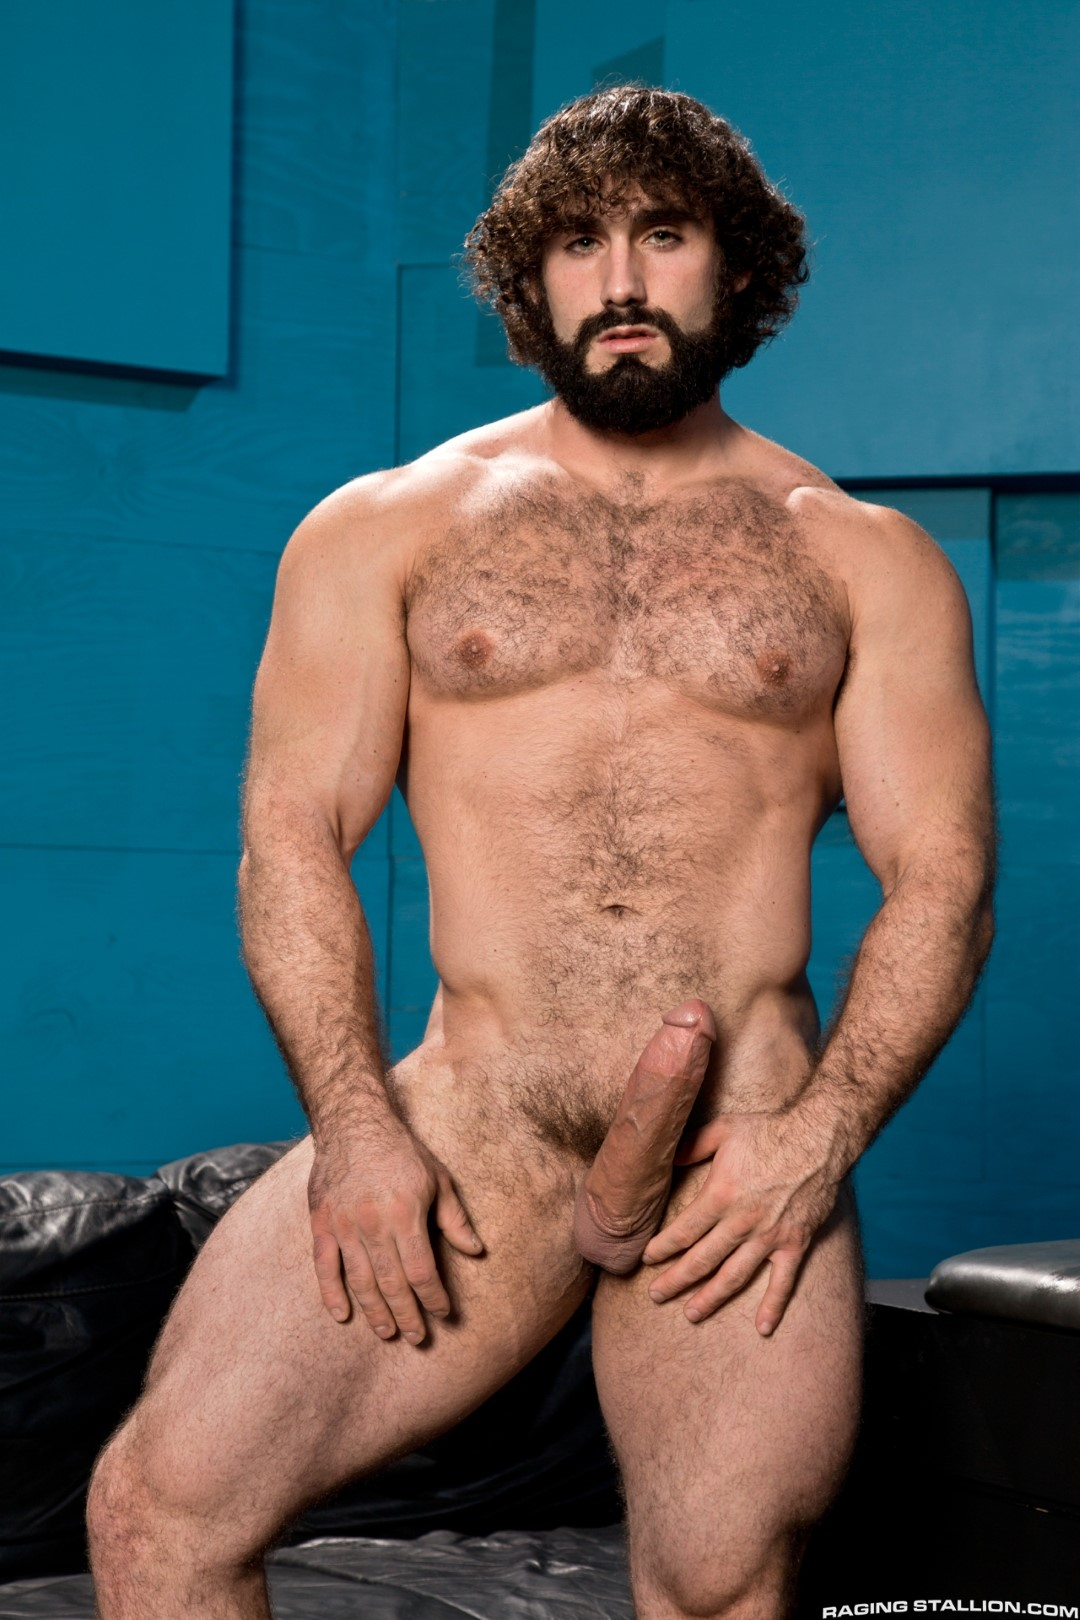 Raging-Stallion-Johnny-V-and-Jaxton-Wheeler-Hairy-Muscle-Hunk-Fucking-Amateur-Gay-Porn-05 Hairy Muscle Hunk Jaxton Wheeler Fucking A Muscle Jock